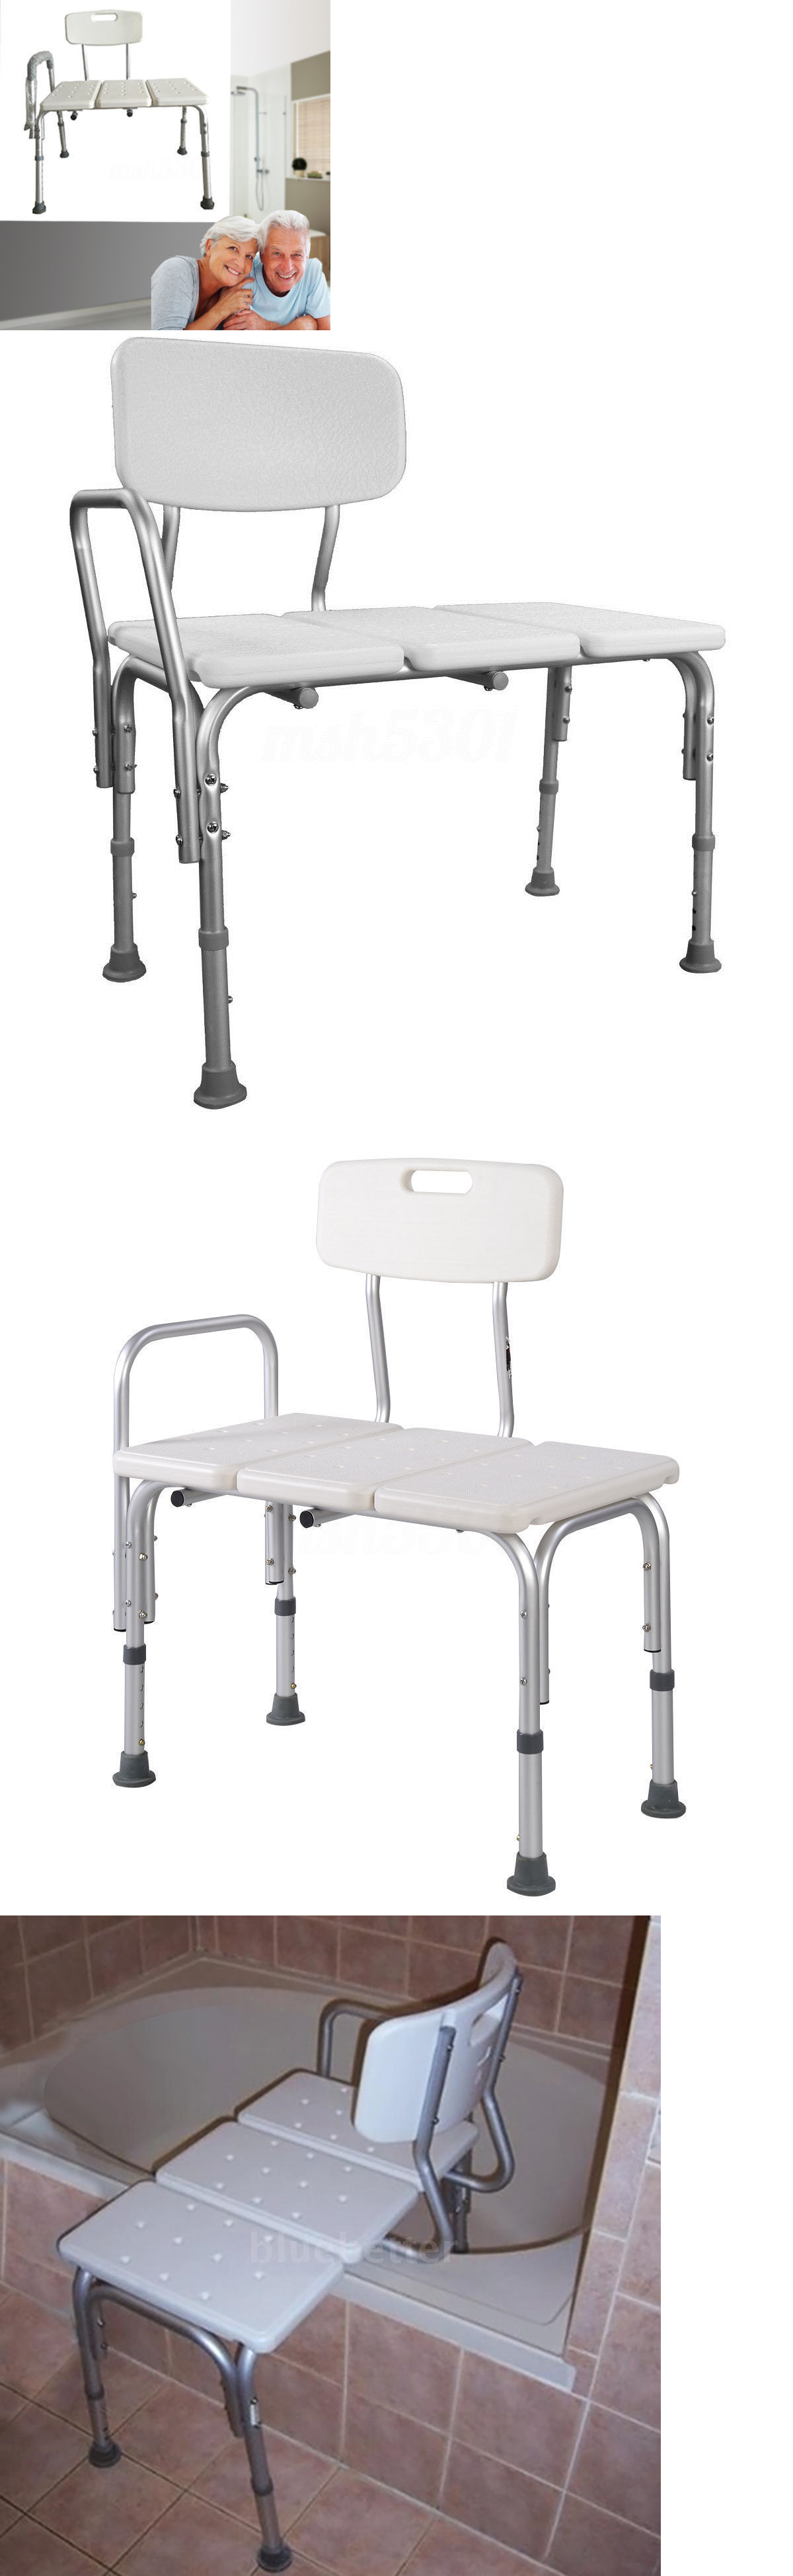 Shower and Bath Seats: Medical Shower Chair Height Adjustable Bath ...